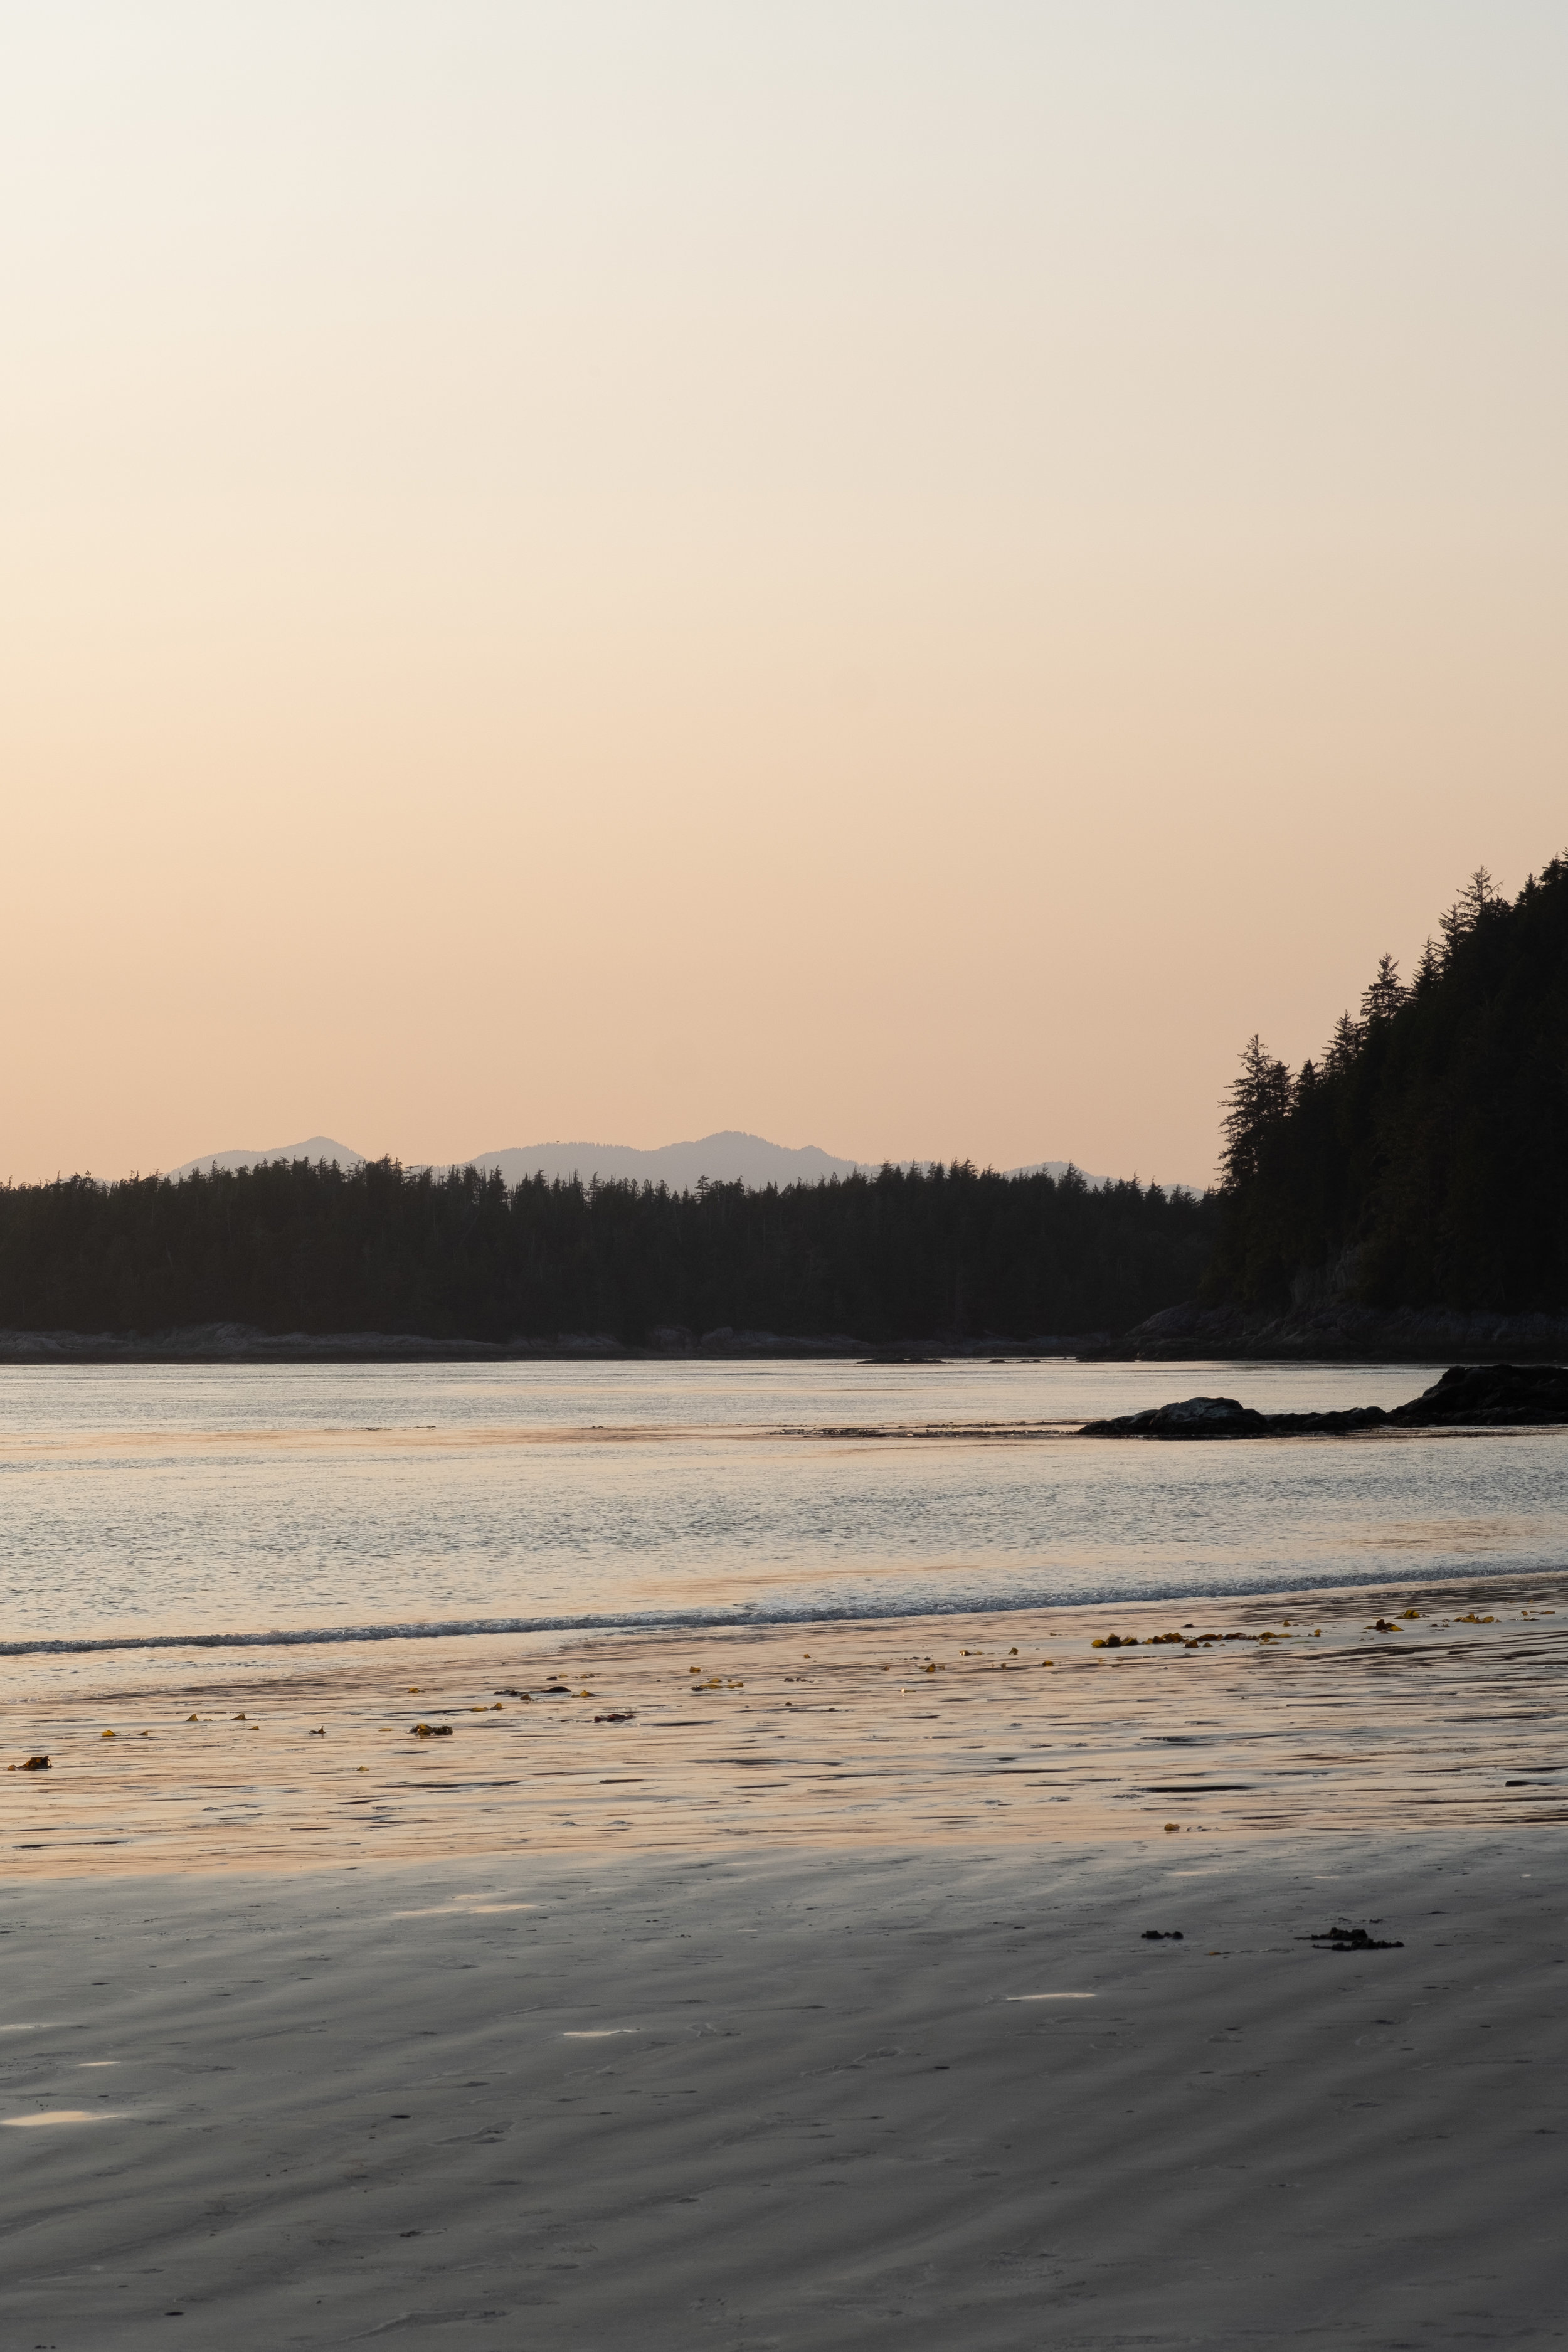 Middle Beach at sunset